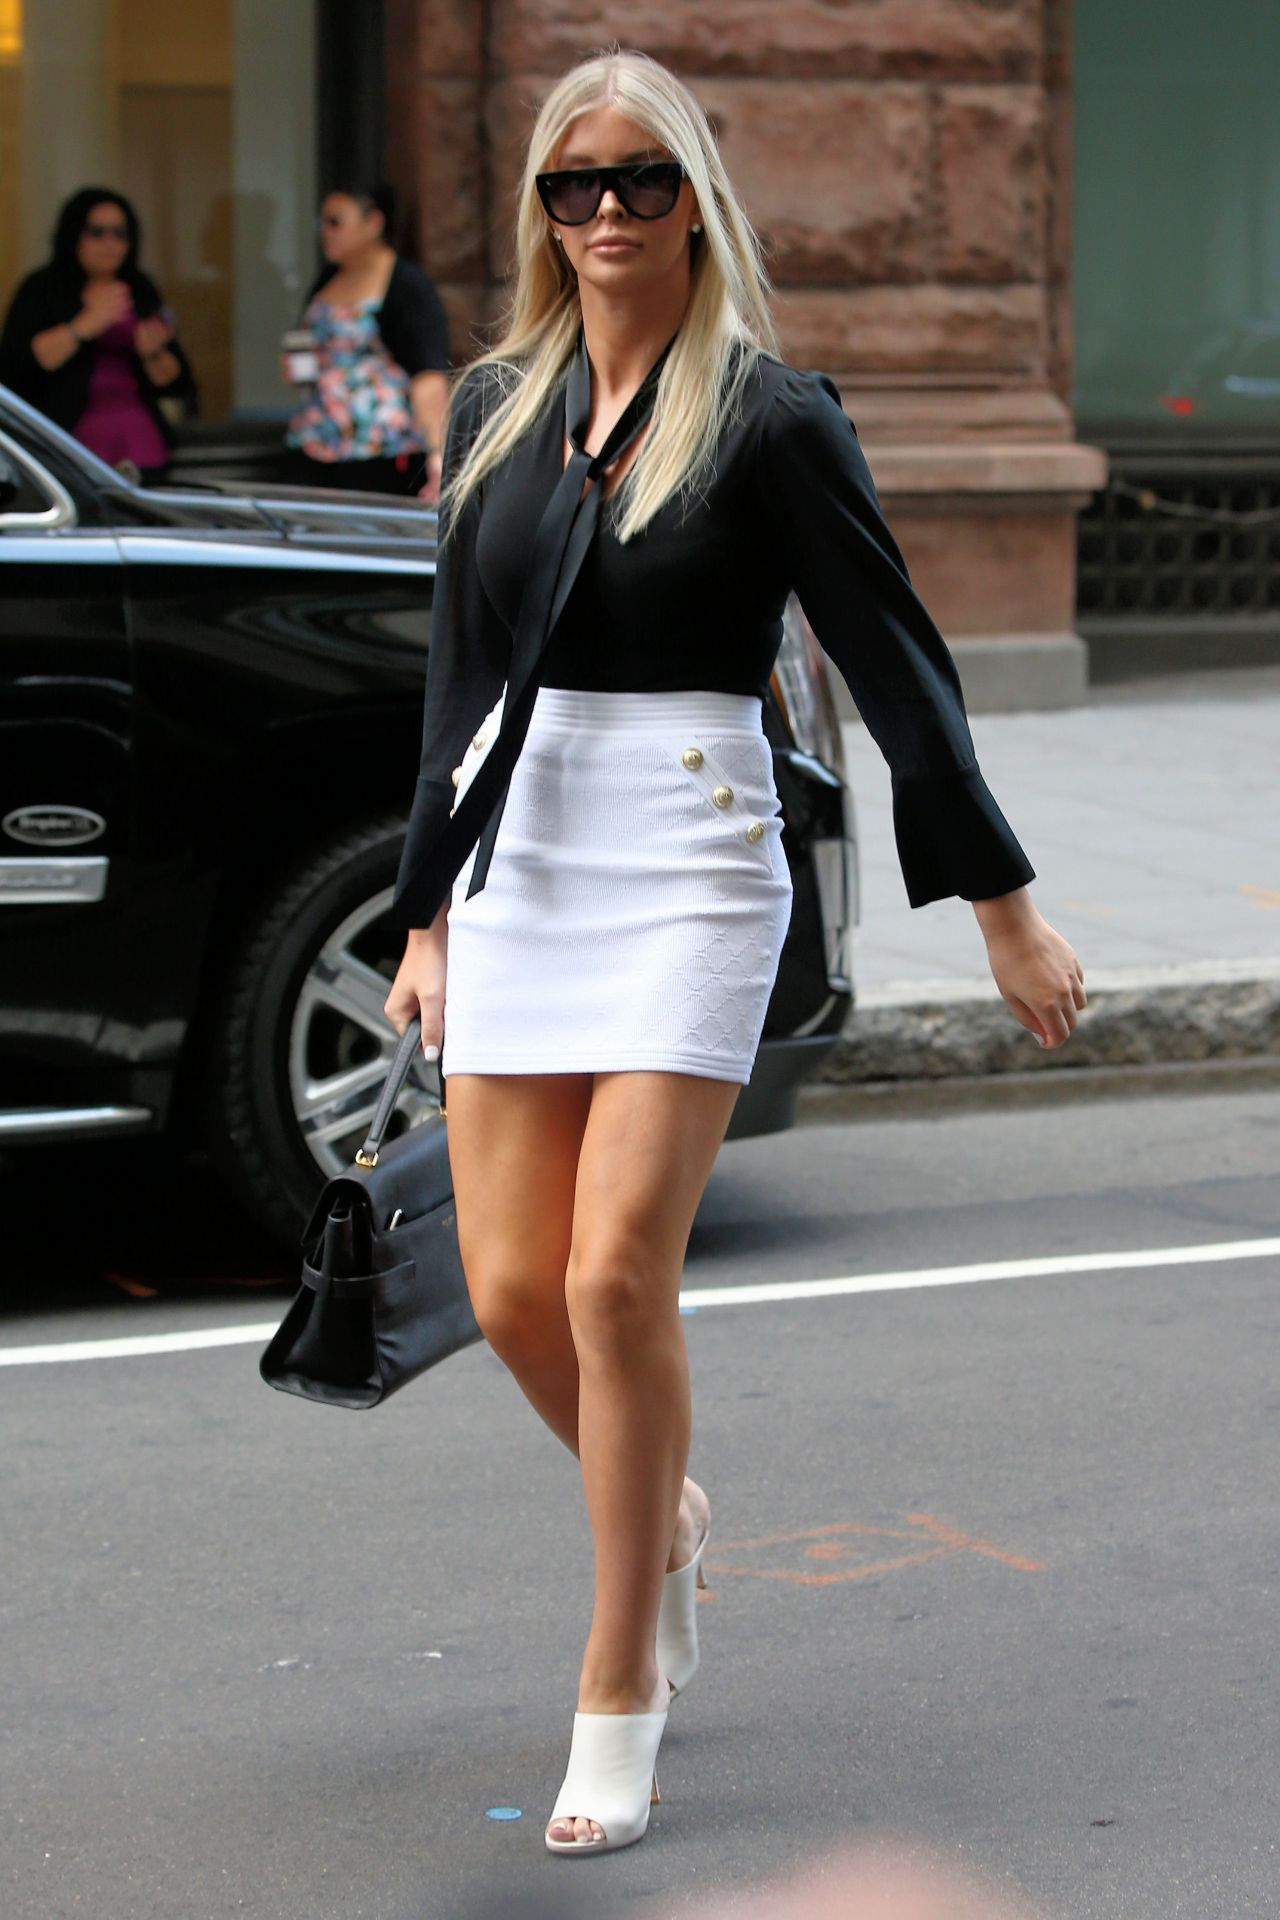 sophia hutchins - photo #21